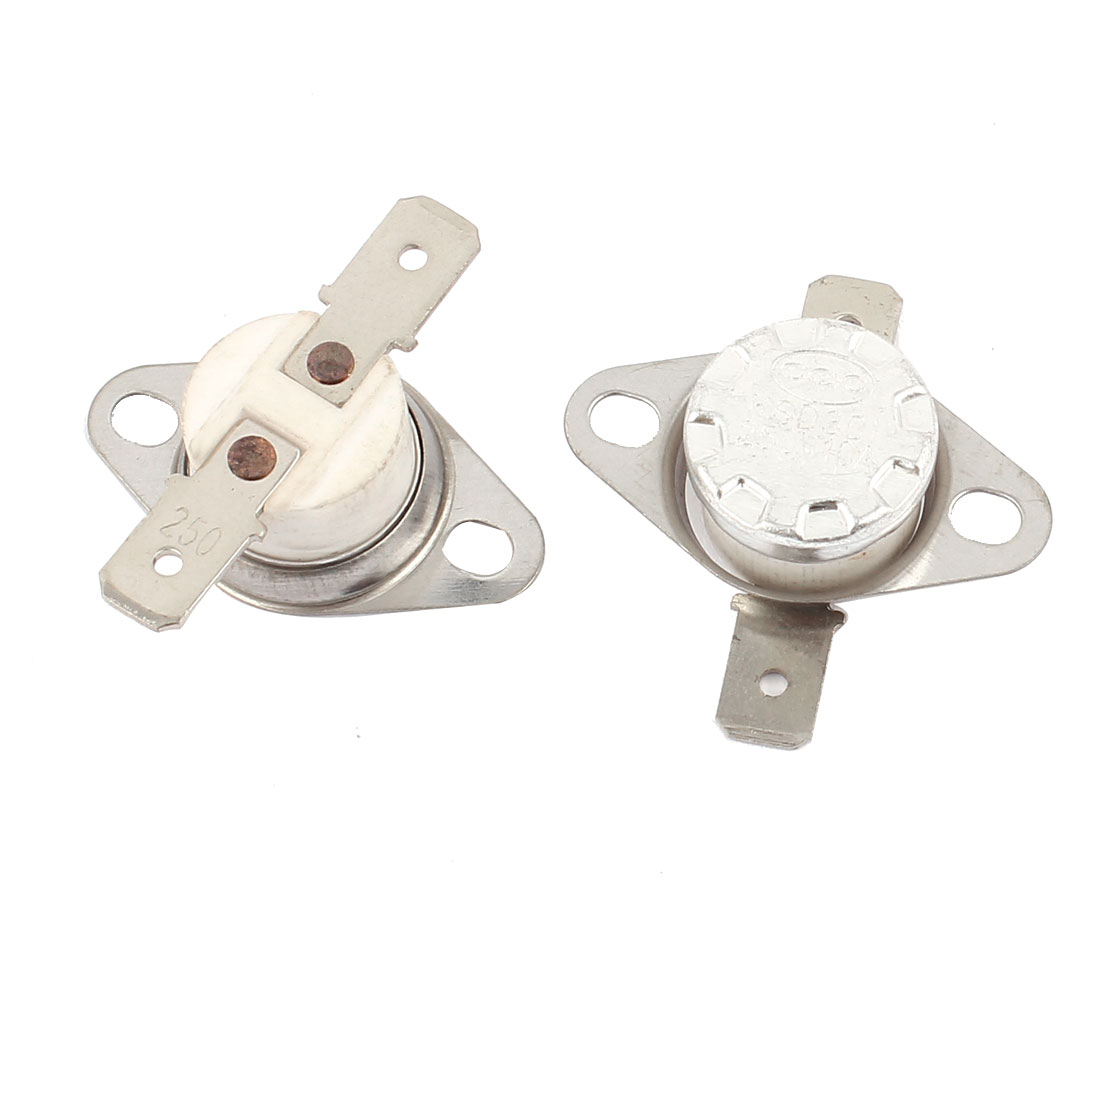 2 Pcs KSD301 Temperature Control Switch Thermostats 250V 10A 250 Celsius N.C.